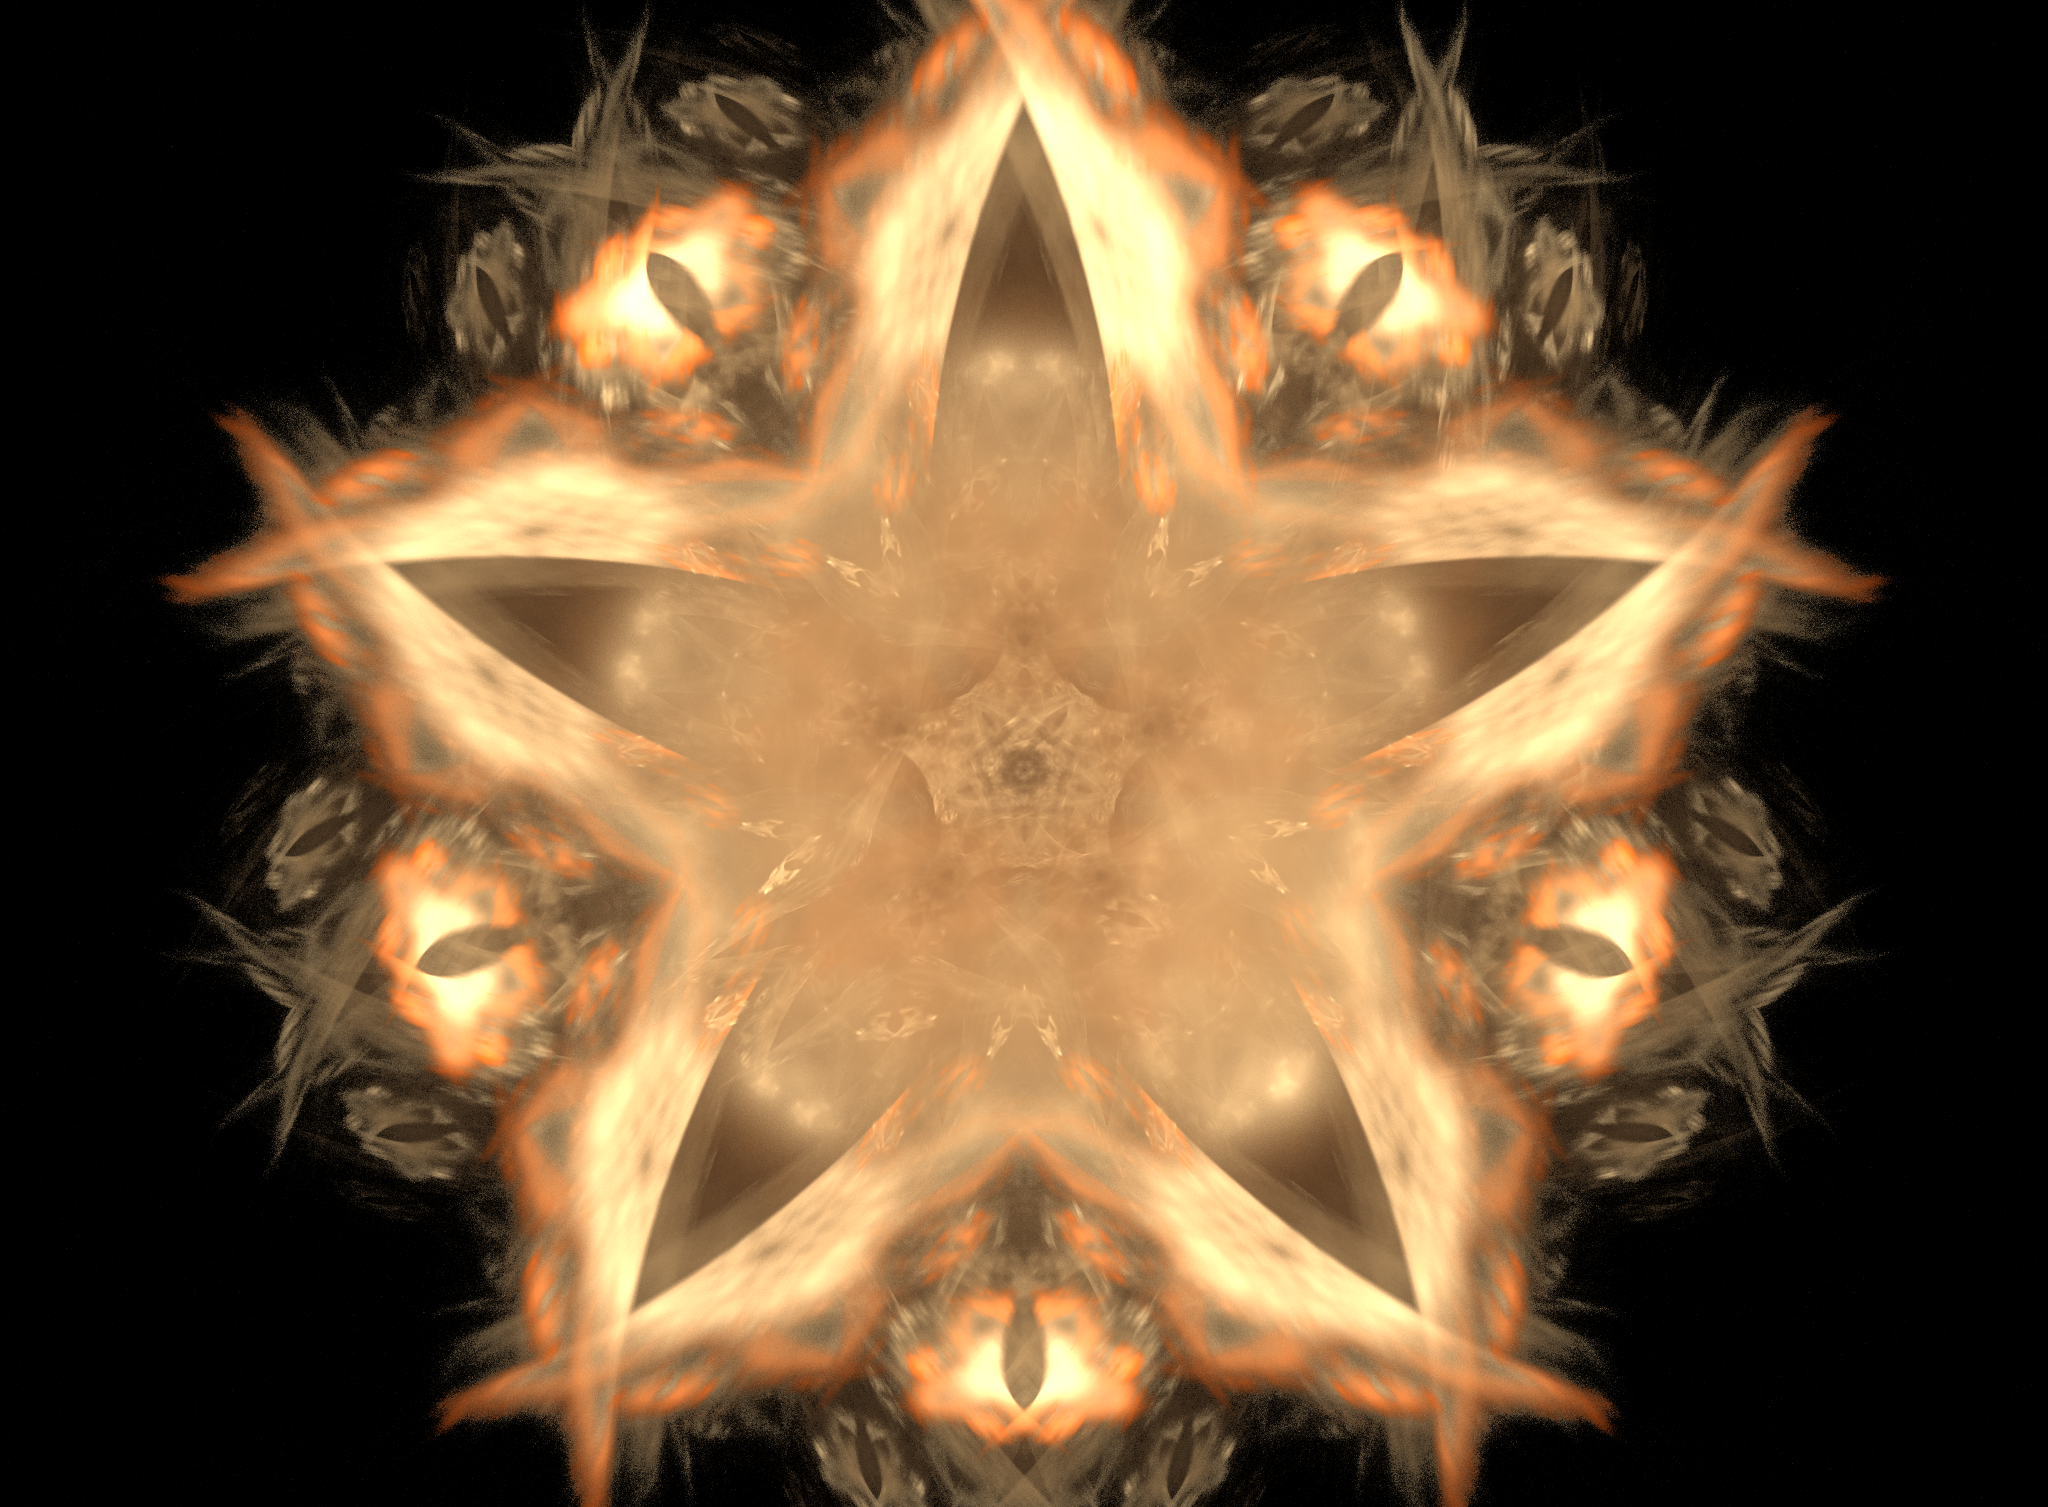 Abstract Orderism Fractal 40 - by Gennady Stolyarov II